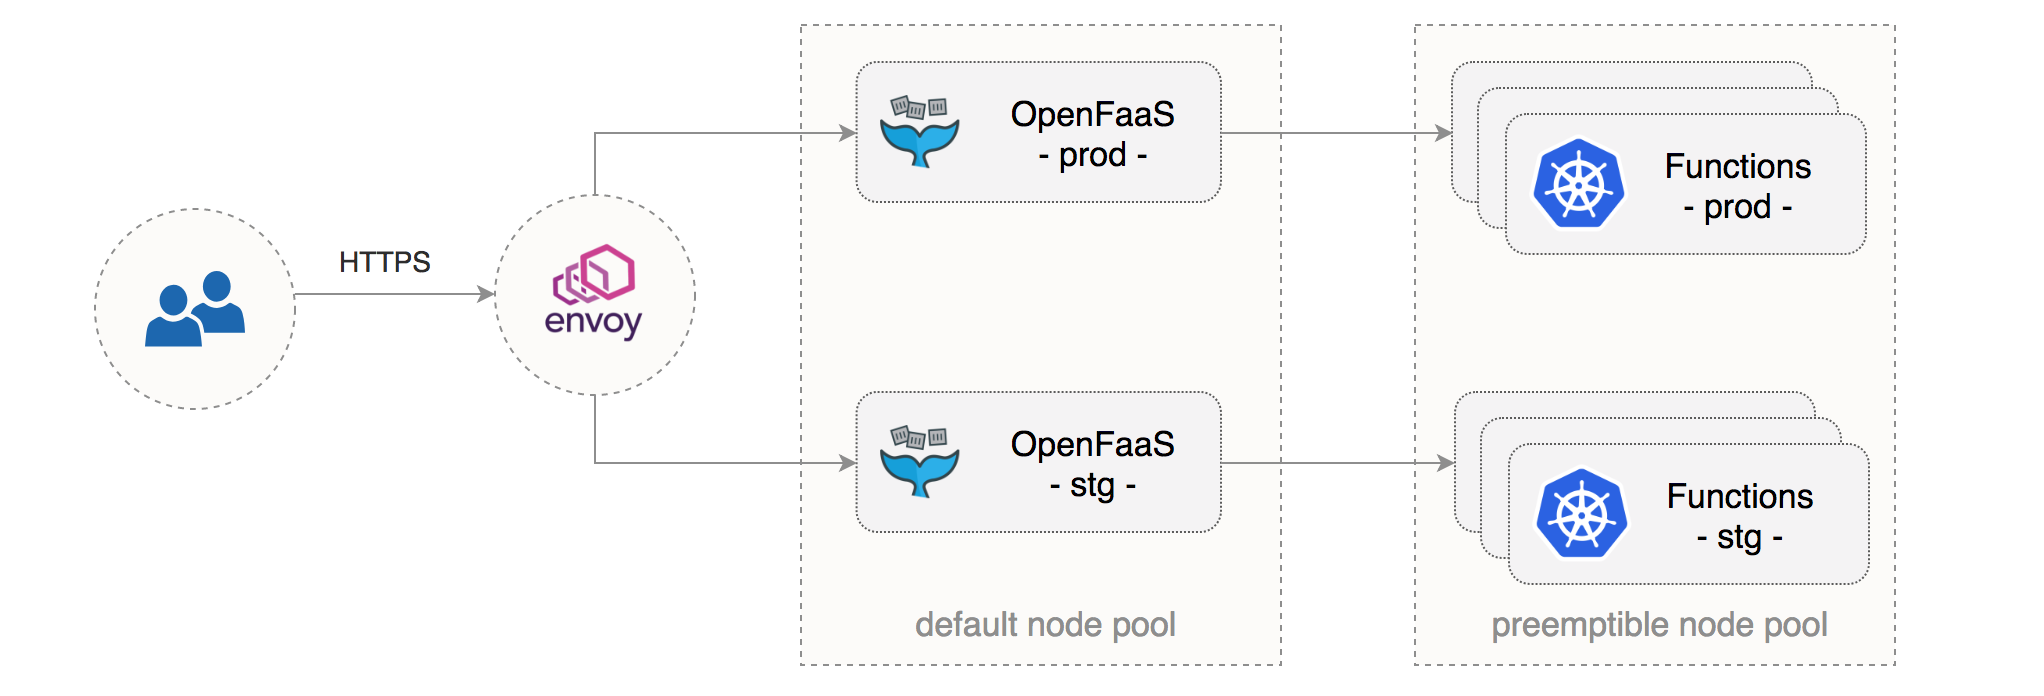 Running OpenFaaS on GKE with preemptible node pools